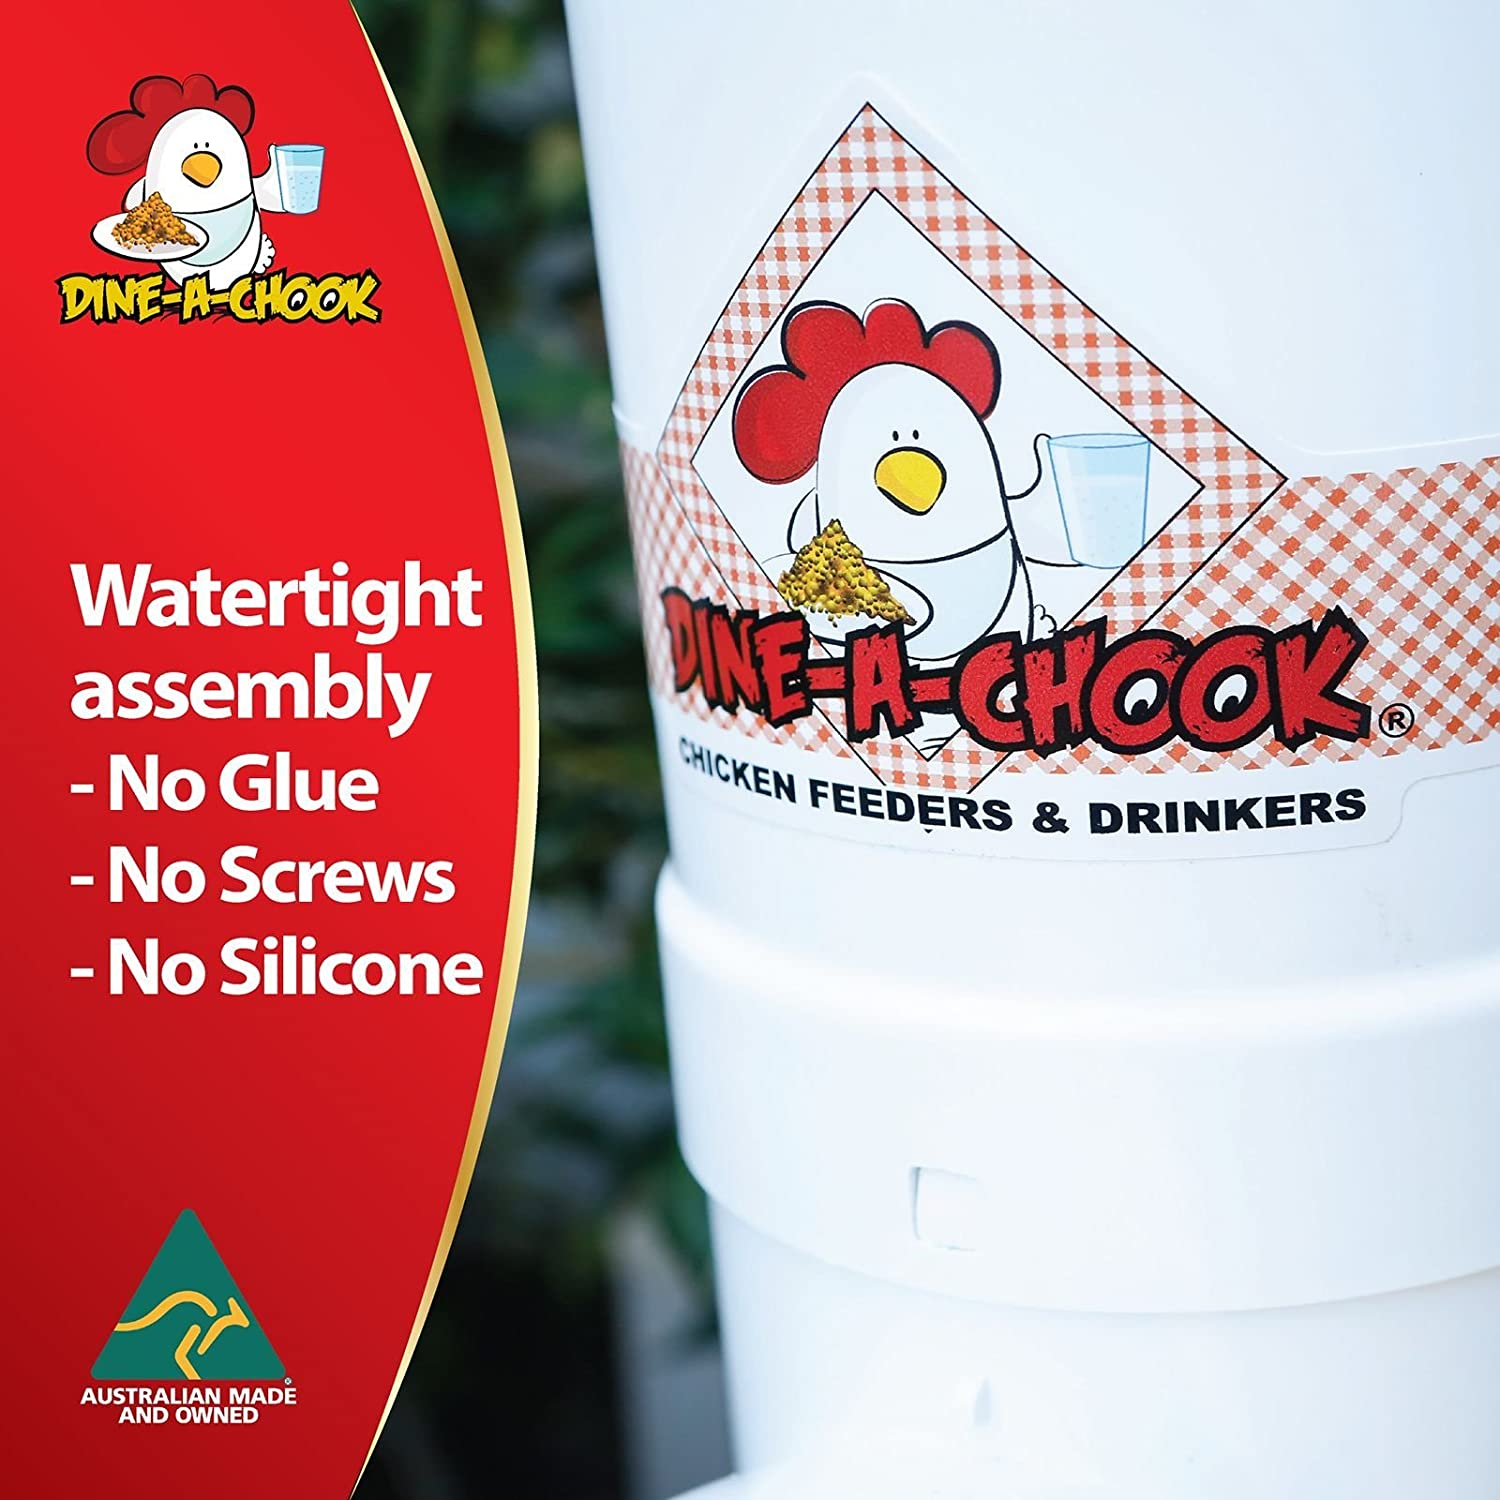 Dine a Chook 3.5 Litre Chicken Feeder and 4 Litre Drinker Kit. Save money on wasted food